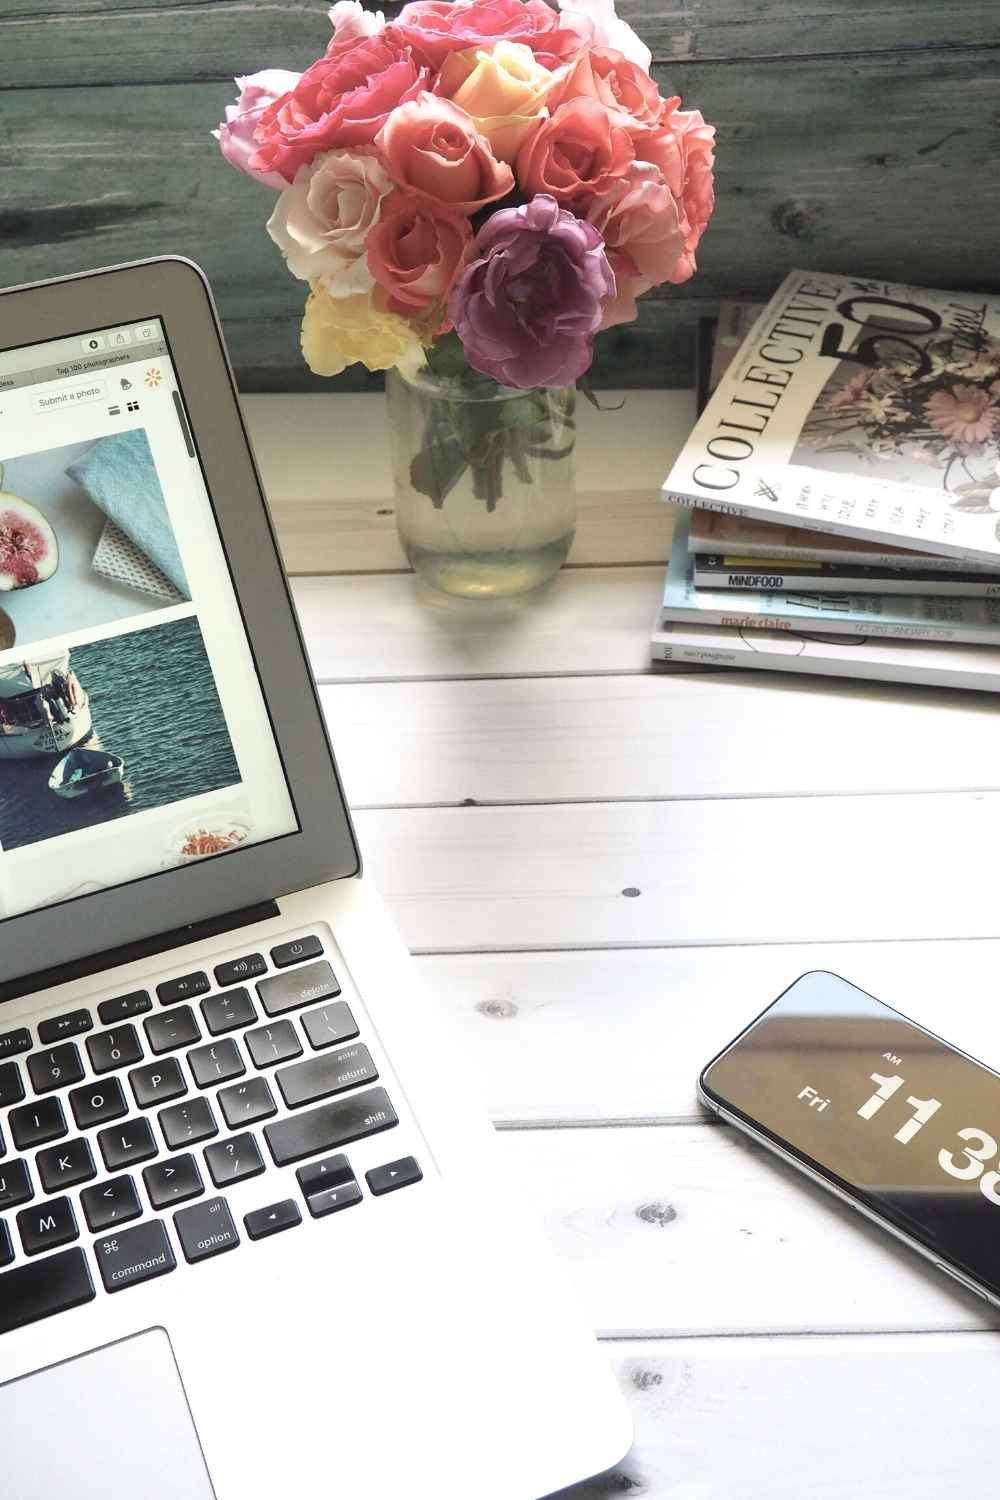 a laptop that is blogging